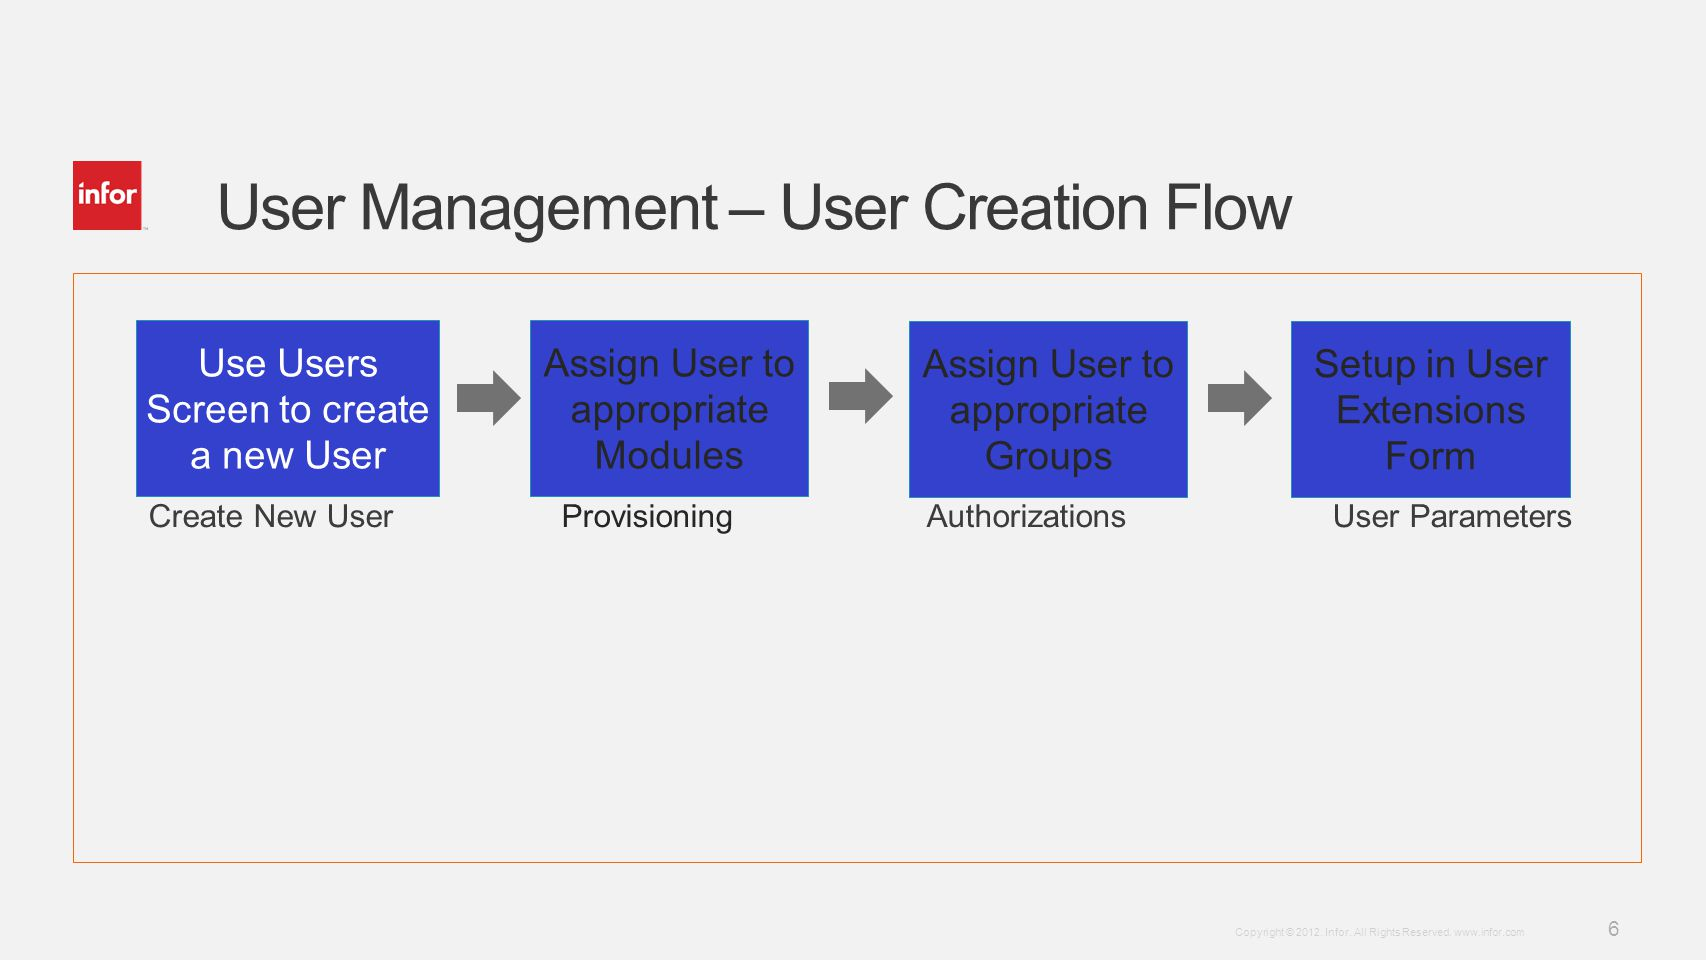 User Management – User Creation Flow